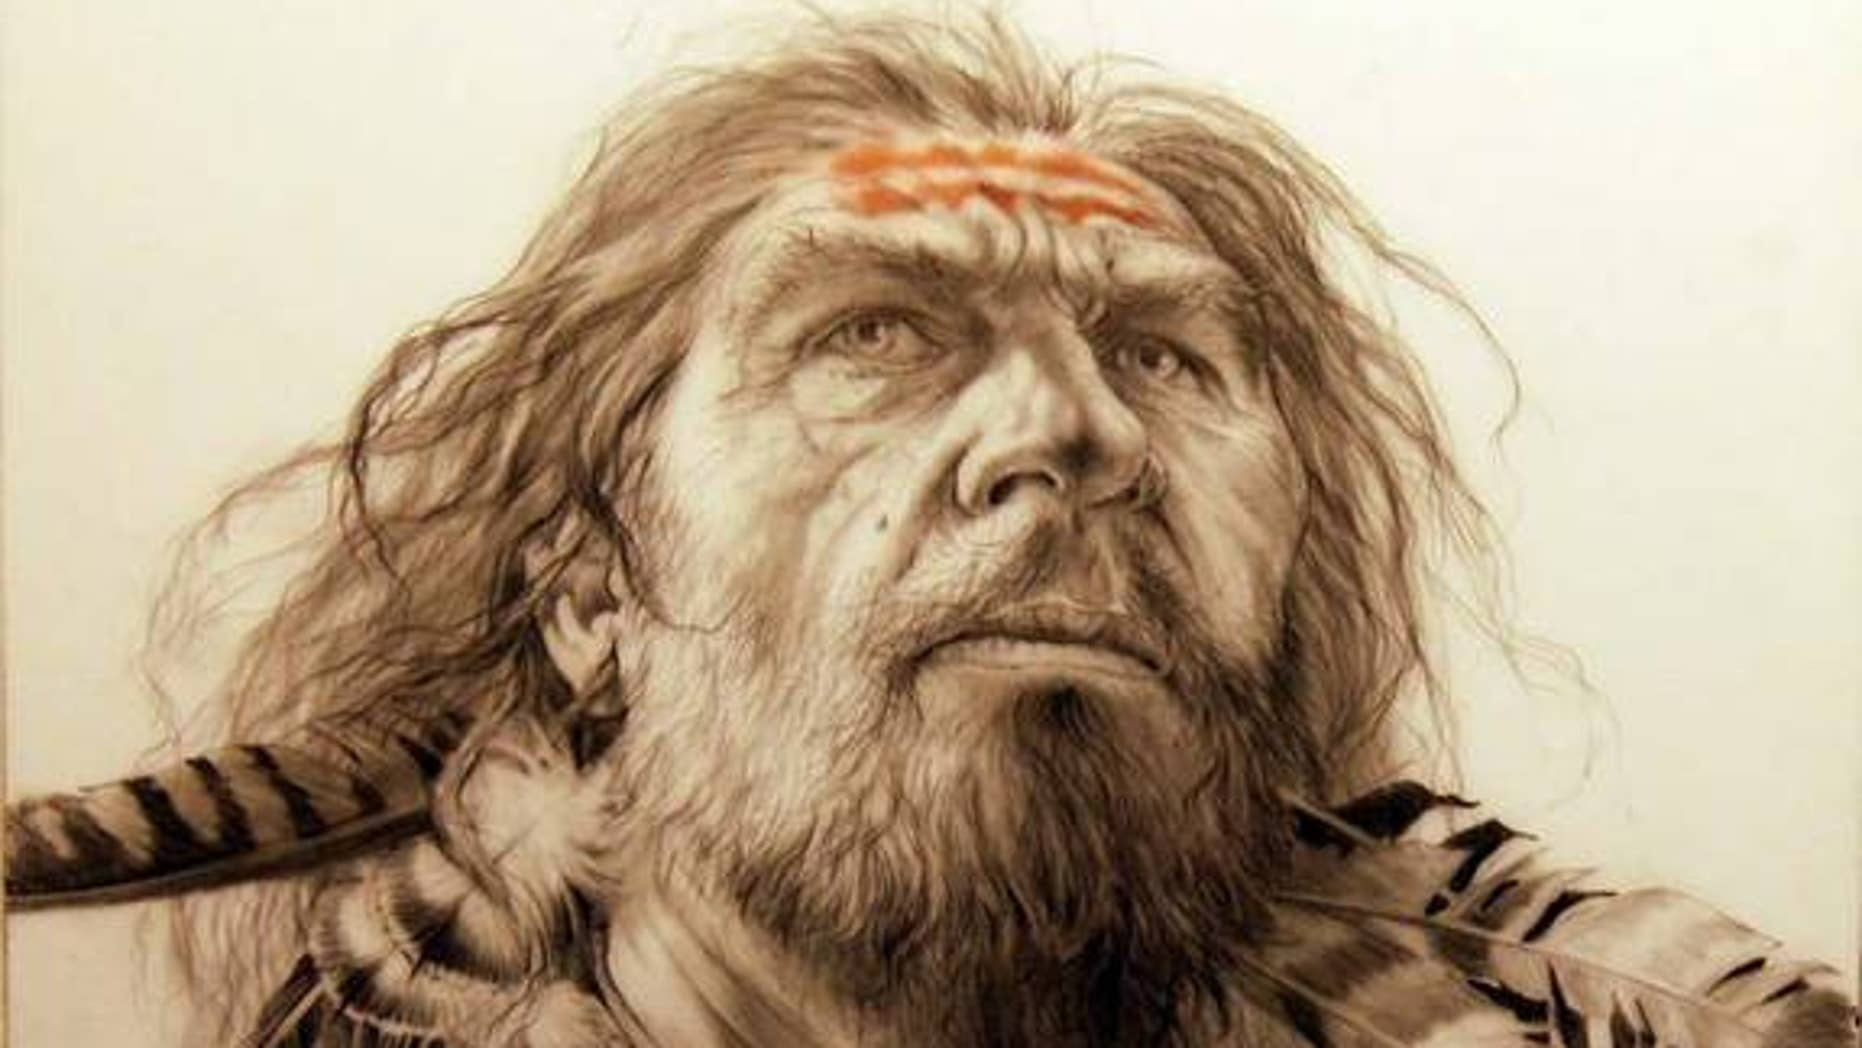 The last sex between Neanderthals and modern humans likely occurred as recently as 47,000 years ago, suggests research detailed online Oct. 4, 2012, in the journal PLoS Genetics